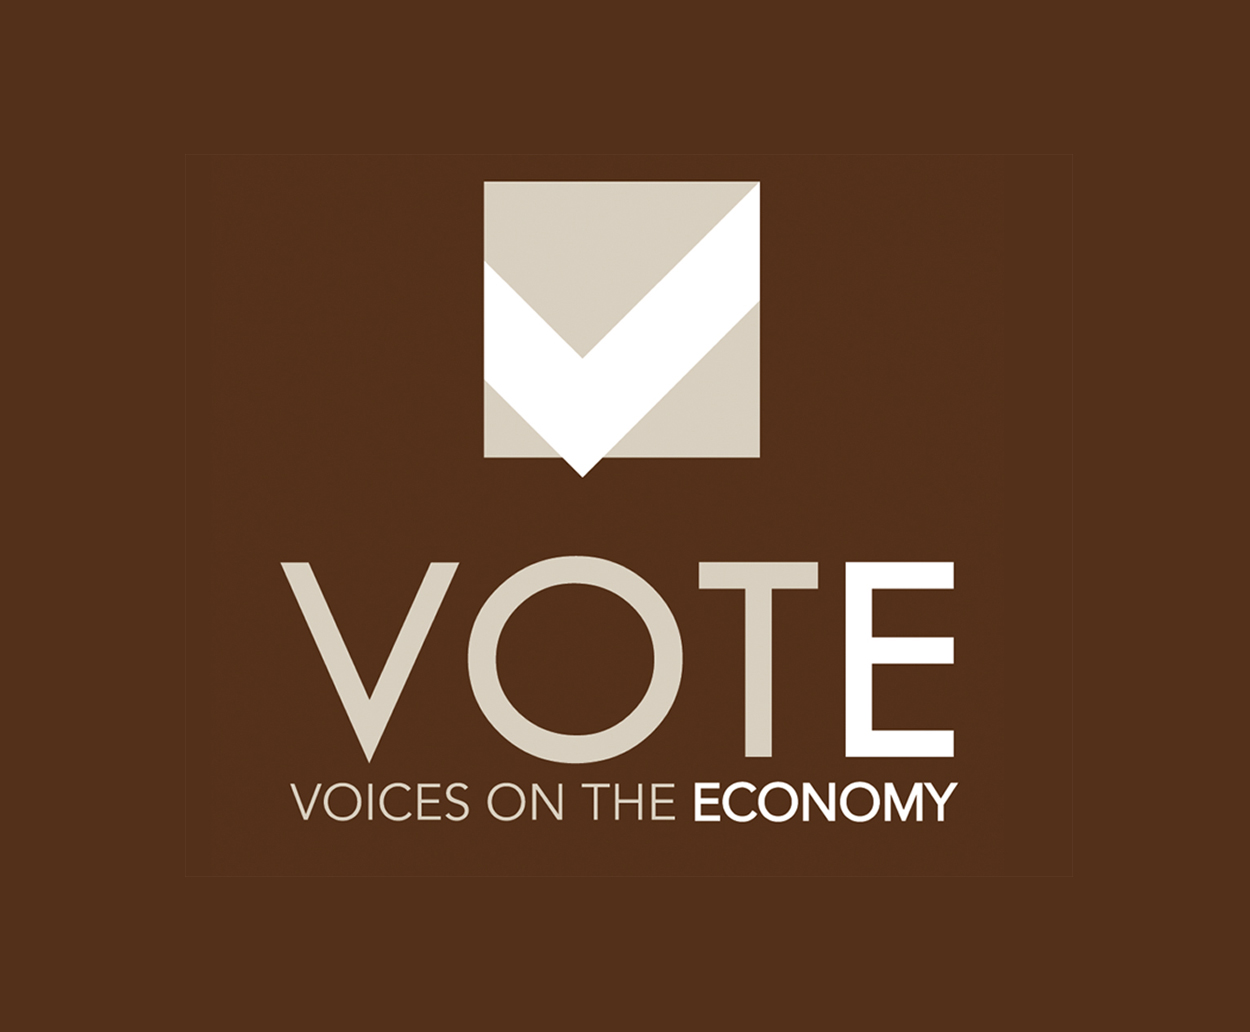 VOTE Voices on the Economy